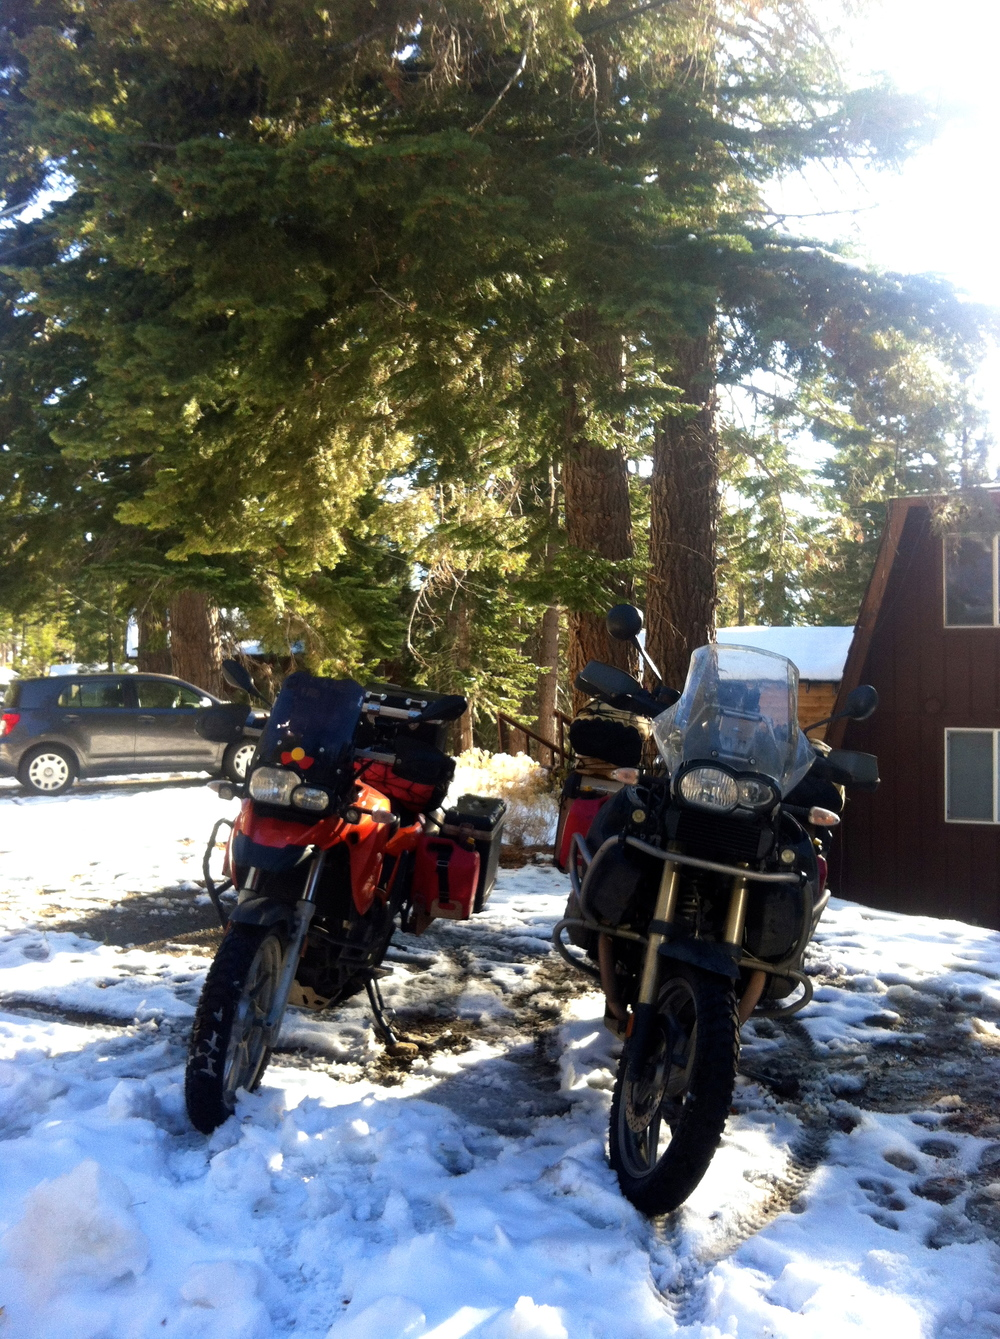 Time to get the bikes out of the snow!